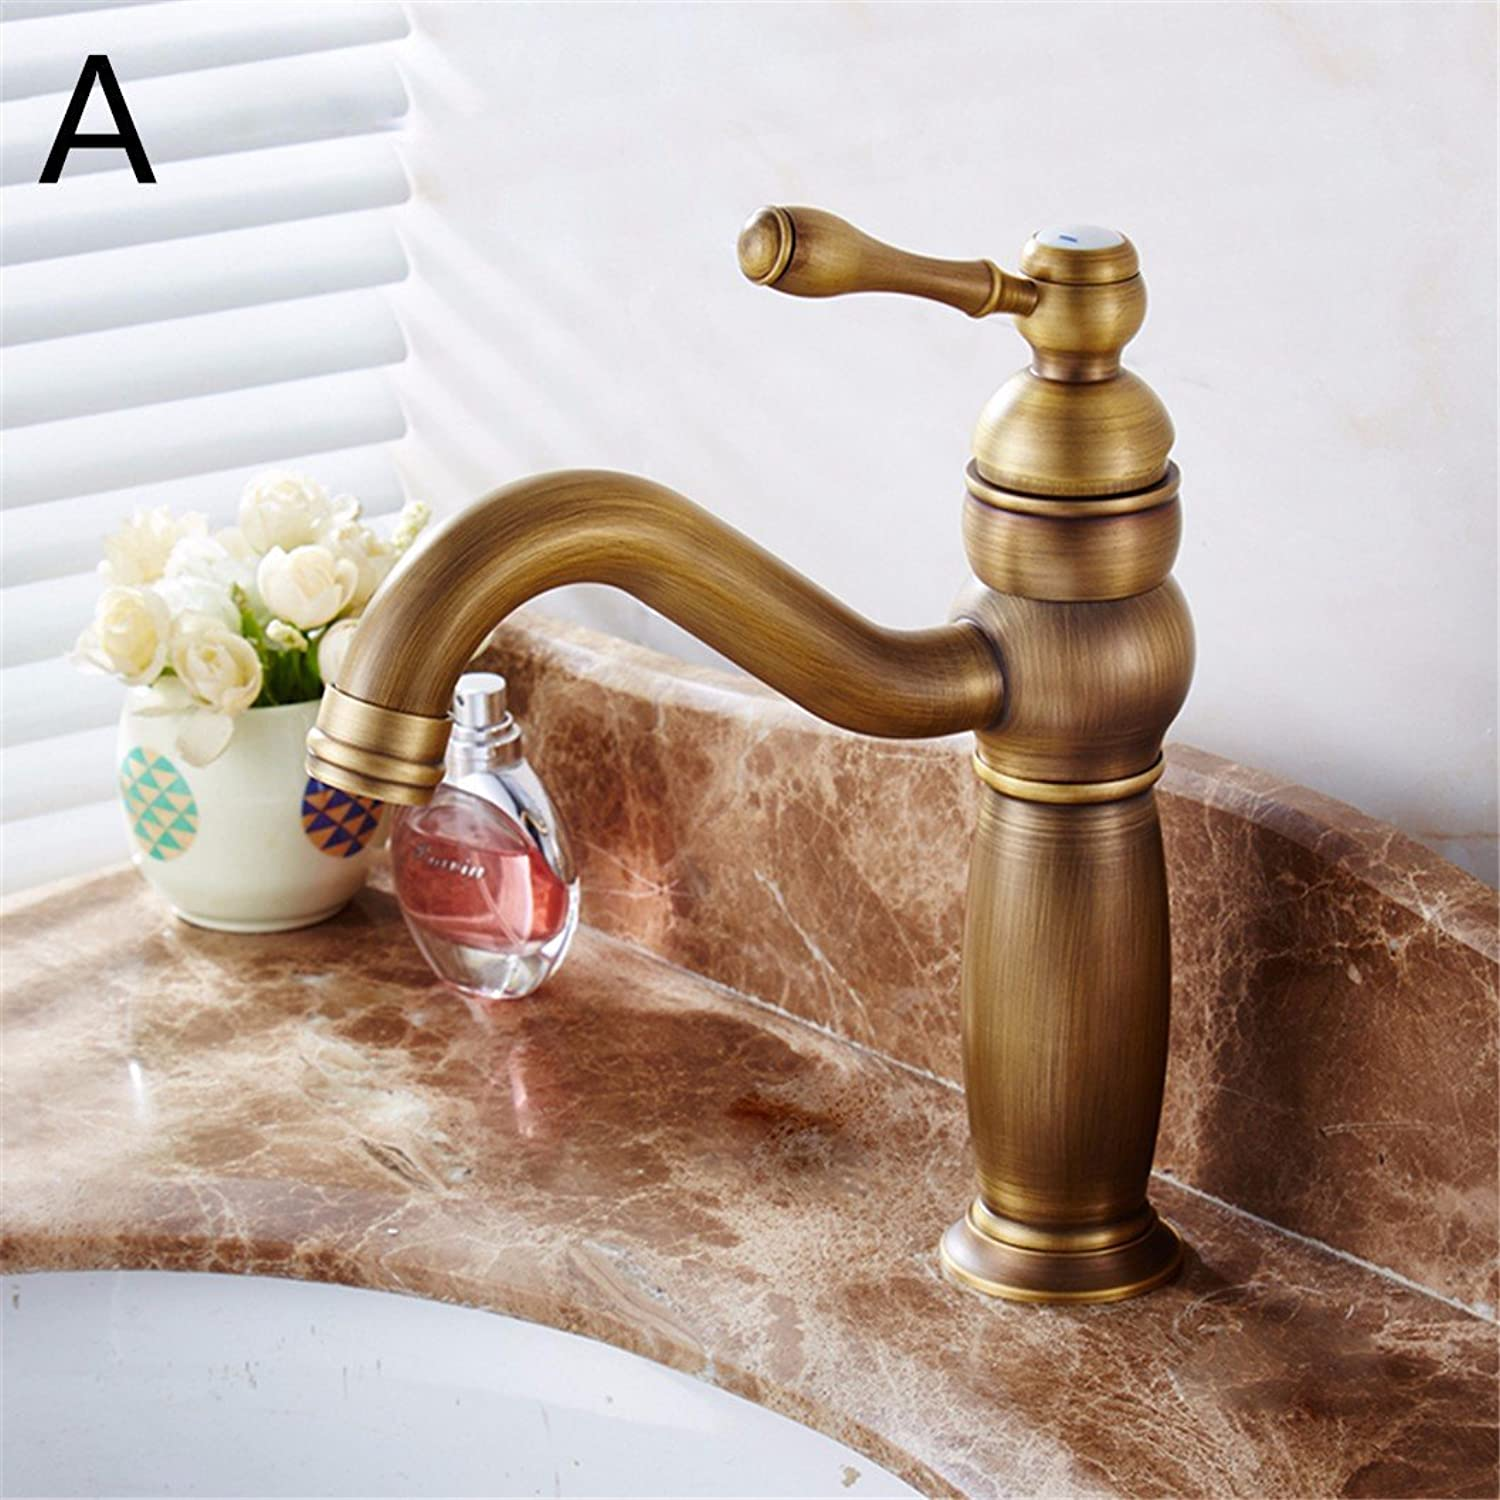 Hlluya Professional Sink Mixer Tap Kitchen Faucet Antique-brass swivel hot and cold Bathroom Cabinet basin taps,